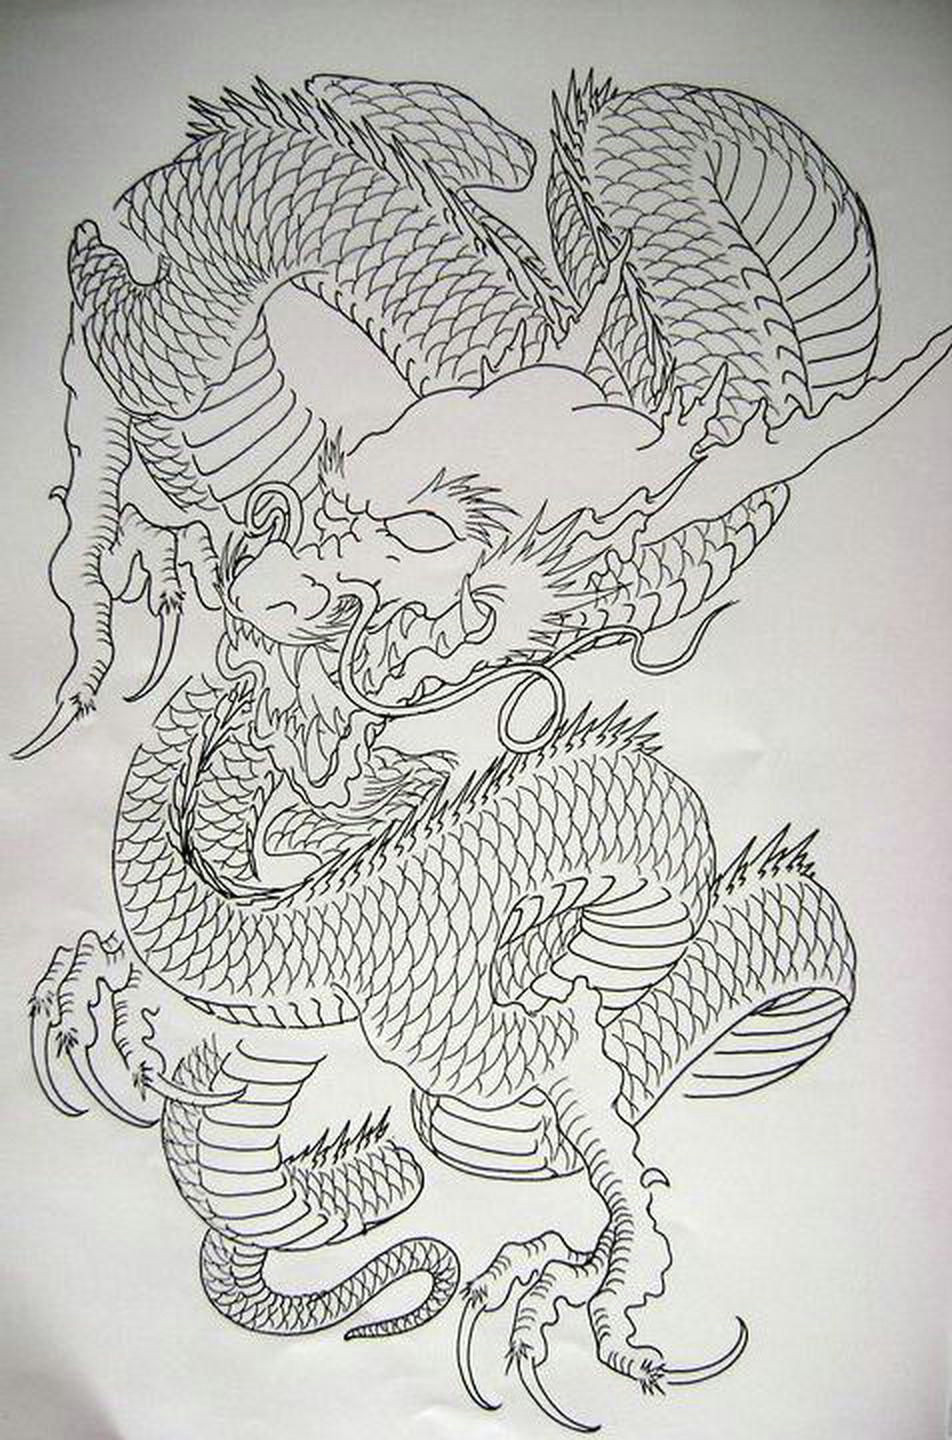 pin by anderson duarte on gueixas pinterest dragons books and tattoo